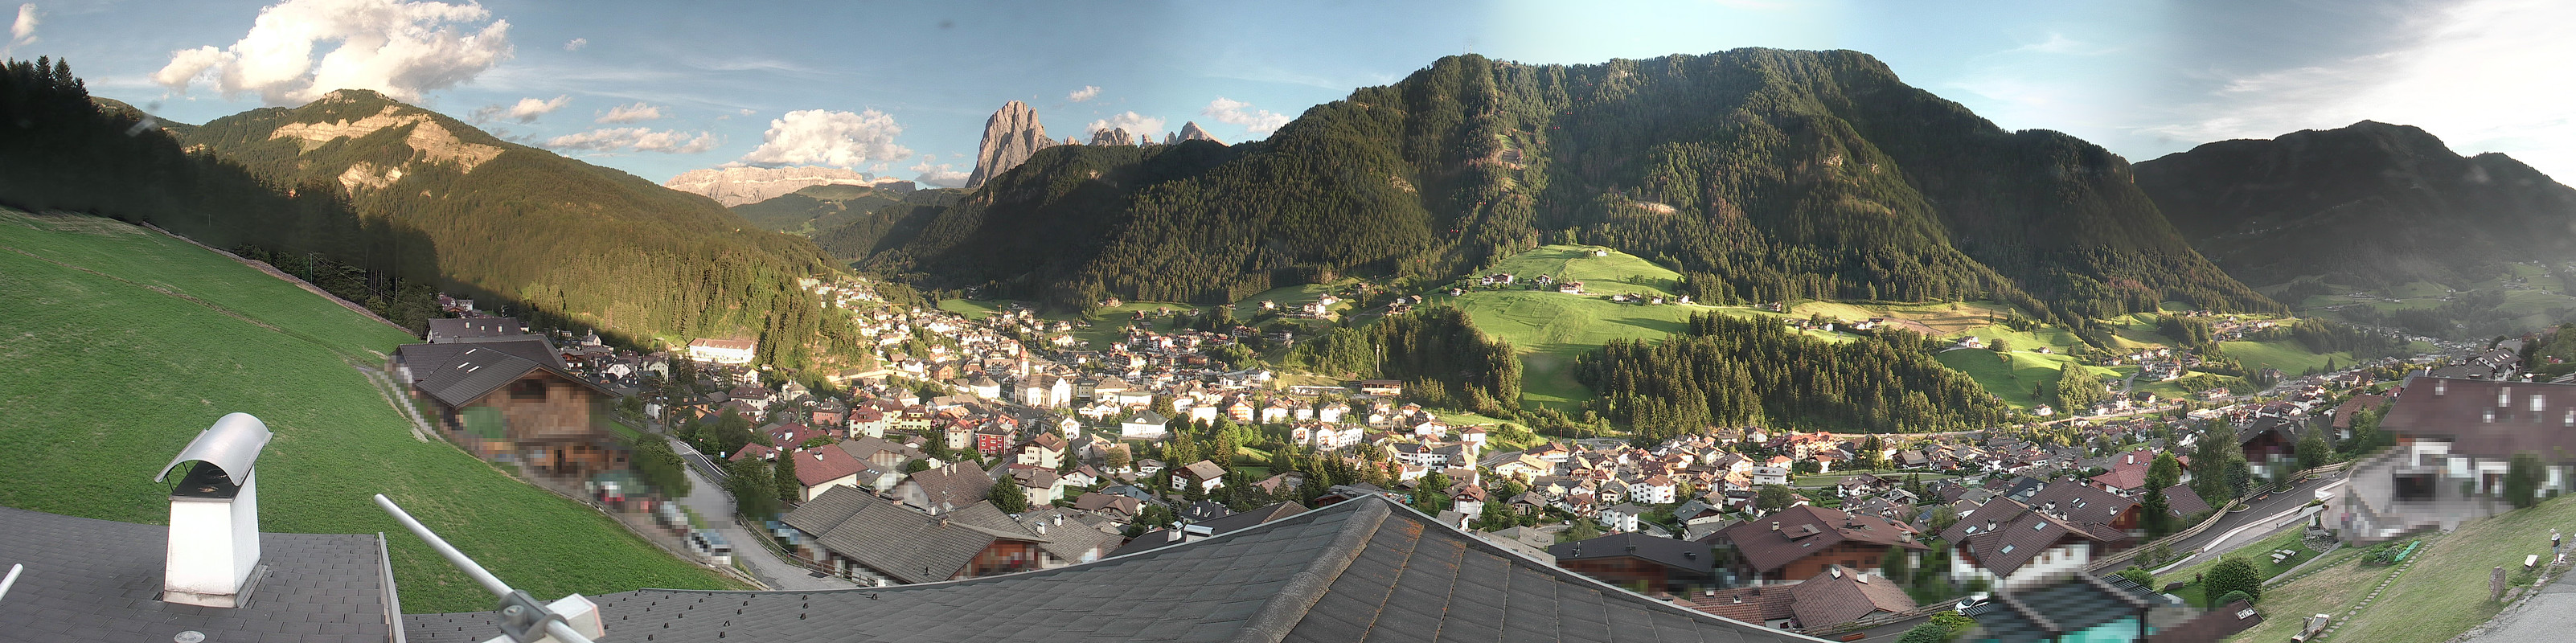 Val Gardena - Ortisei village panorama webcam